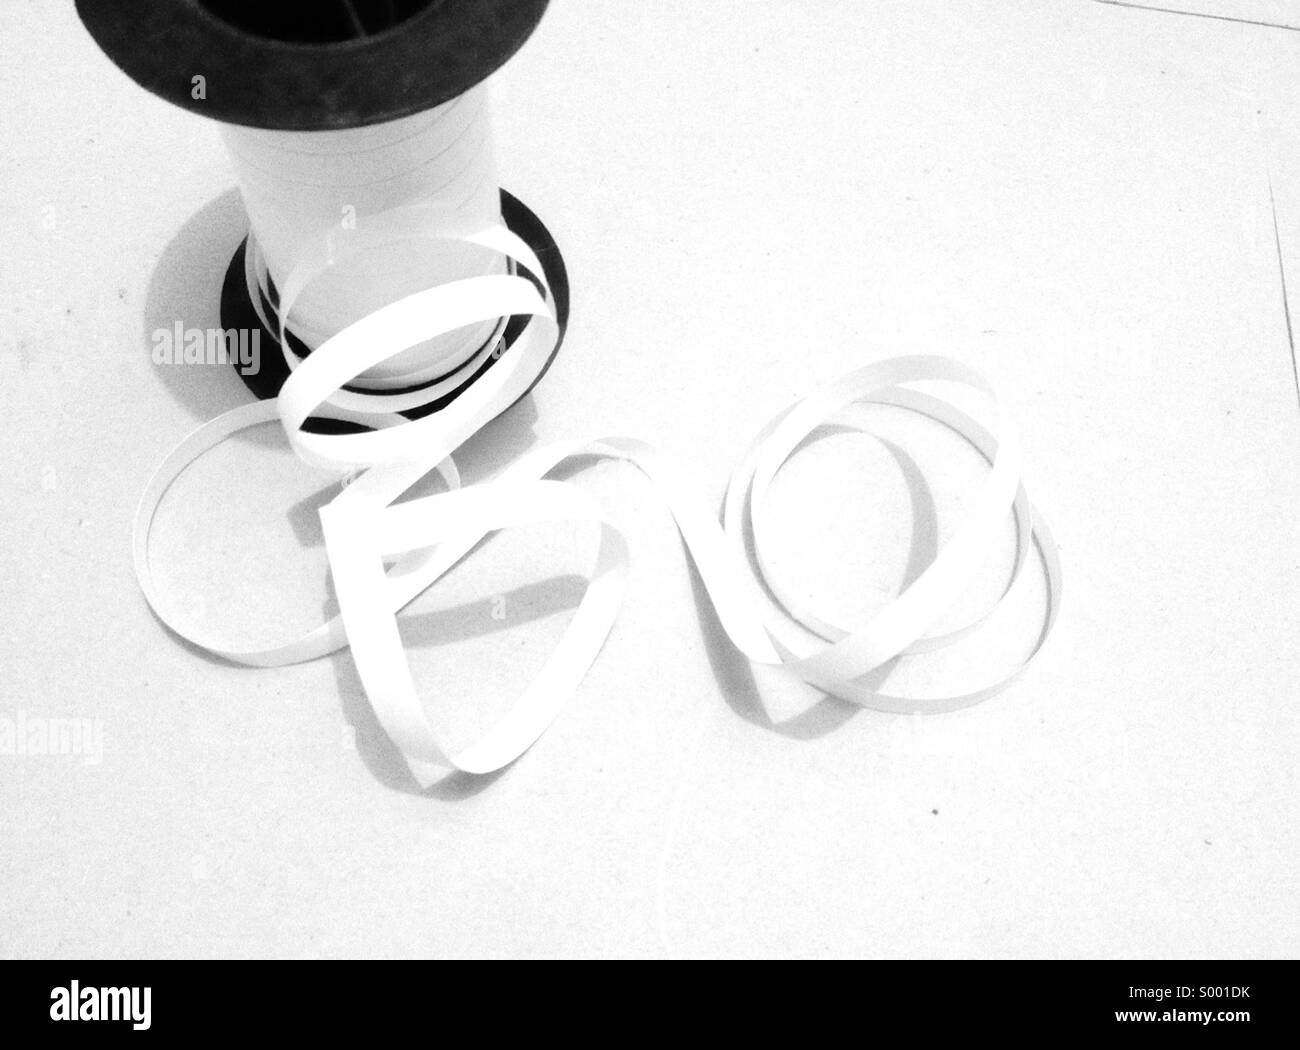 White gift ribbon and spool on white background - Stock Image